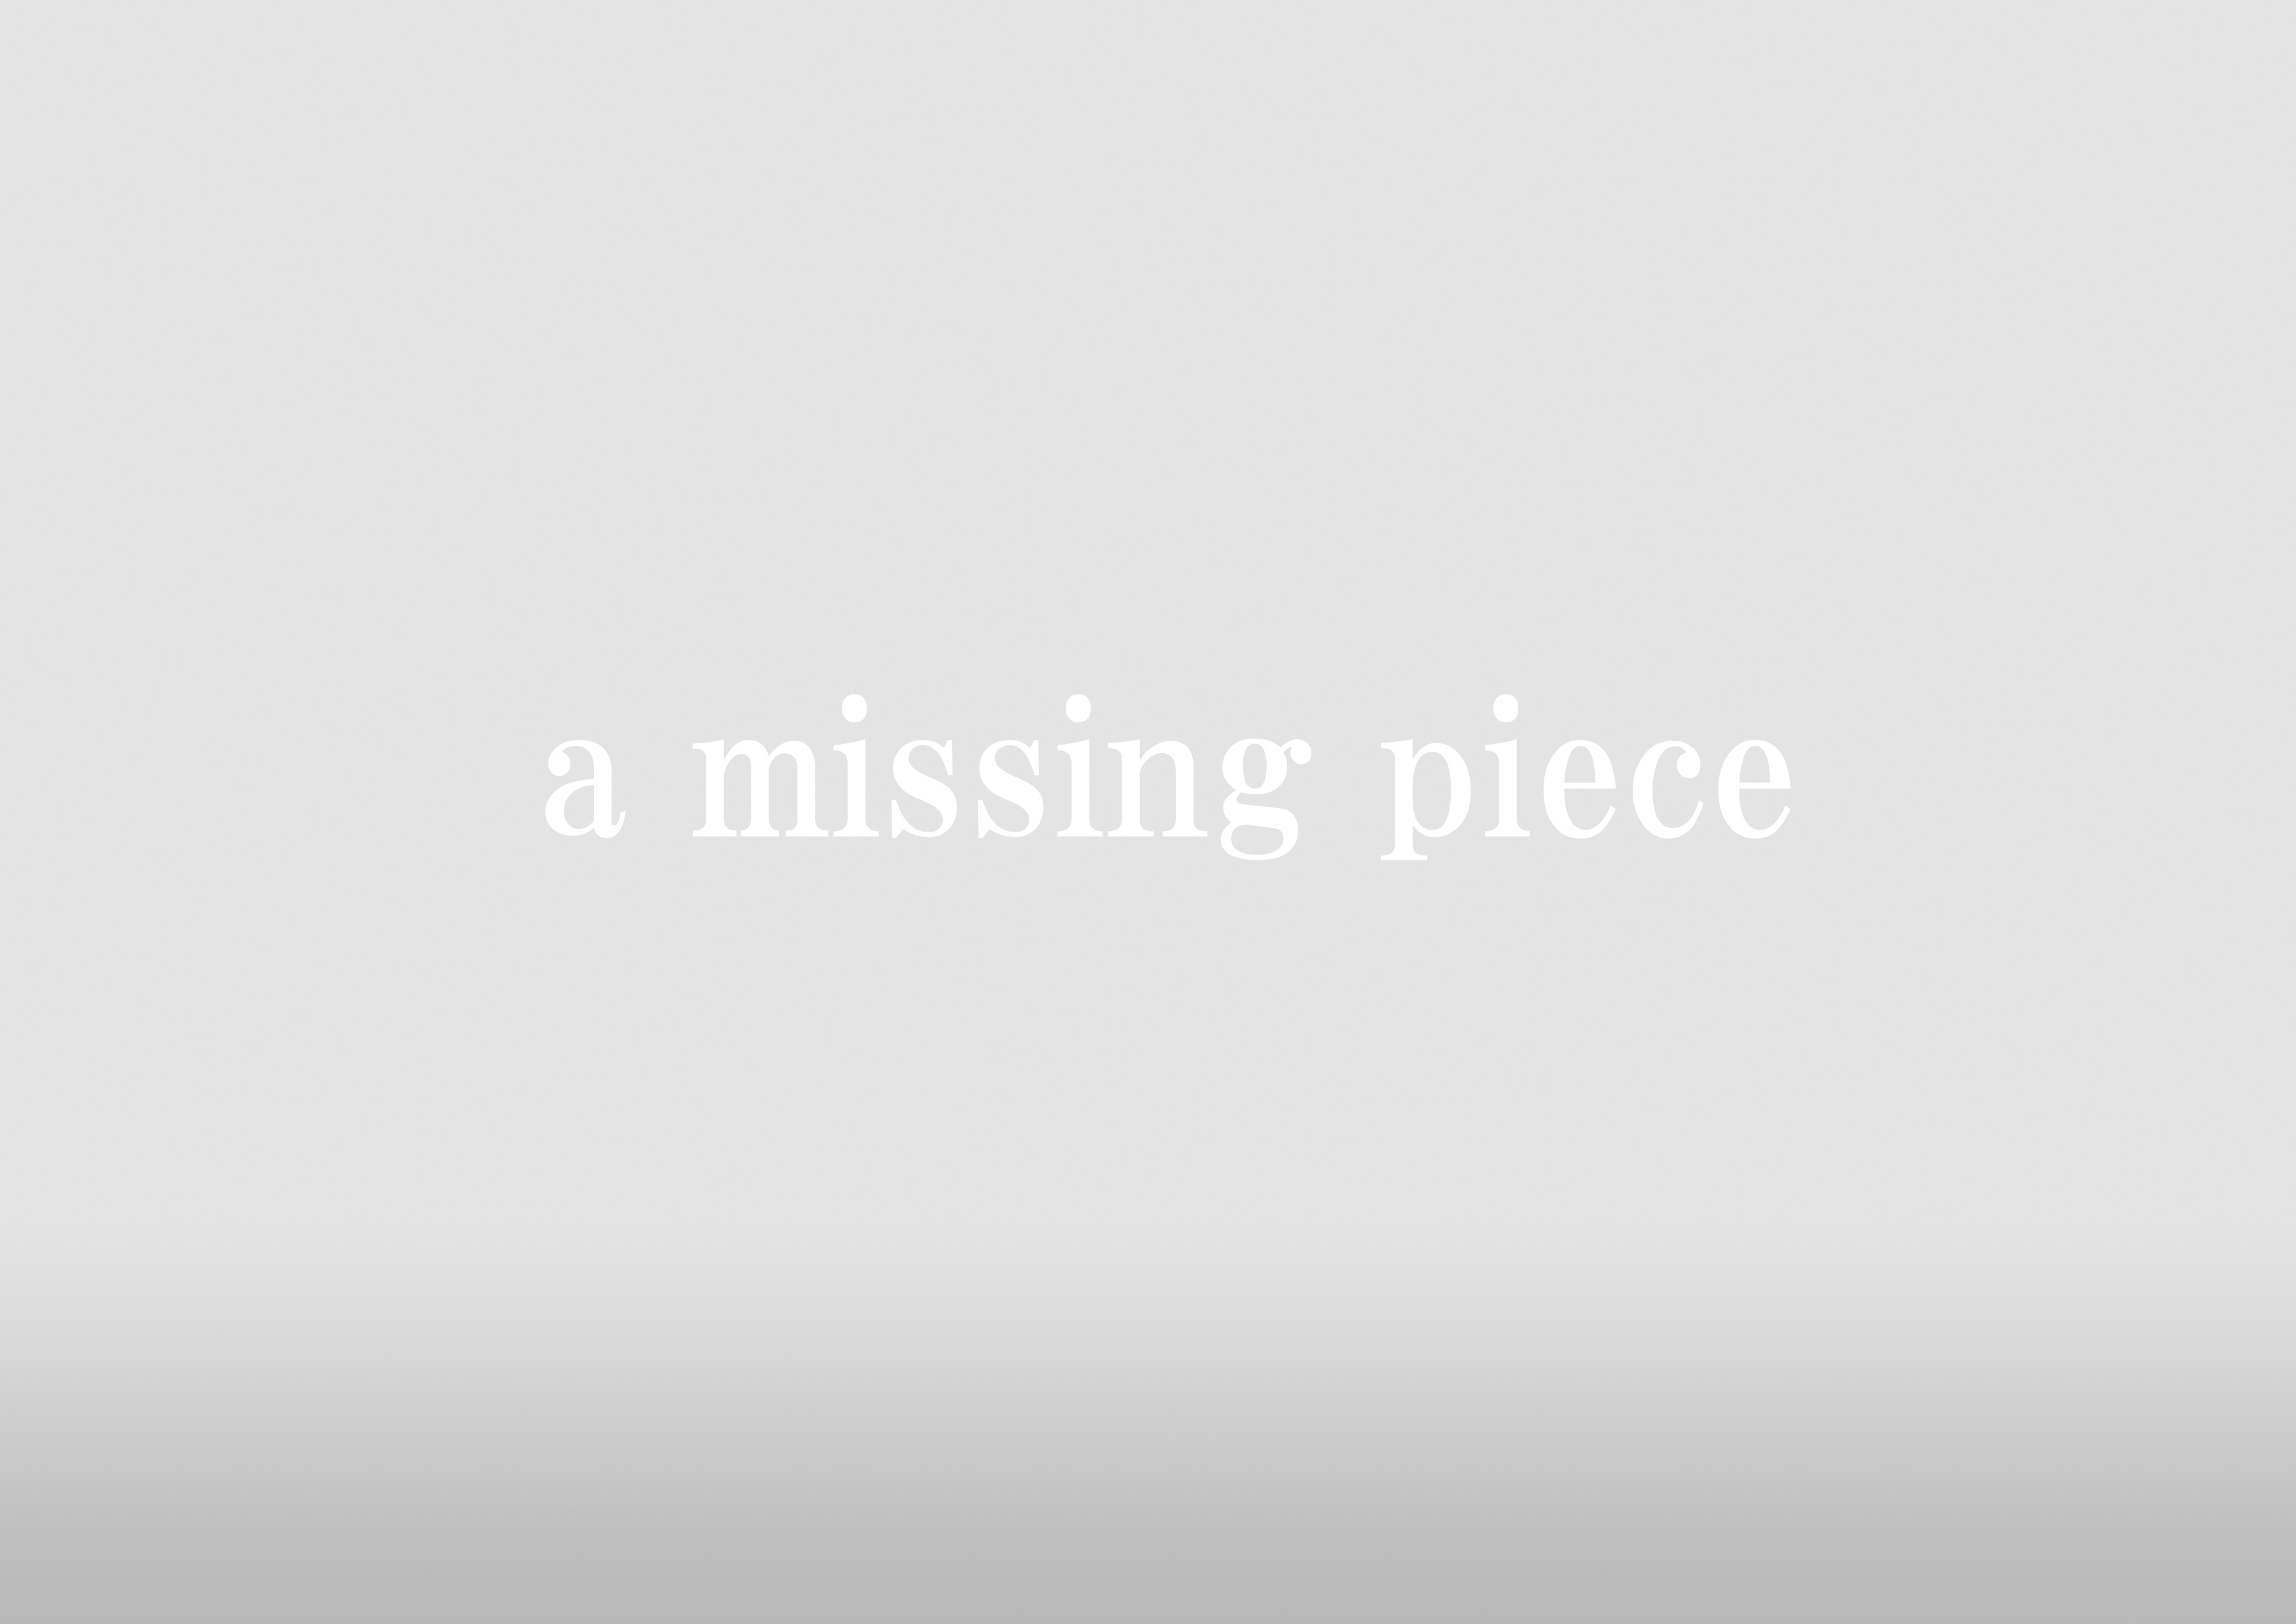 a missing piece